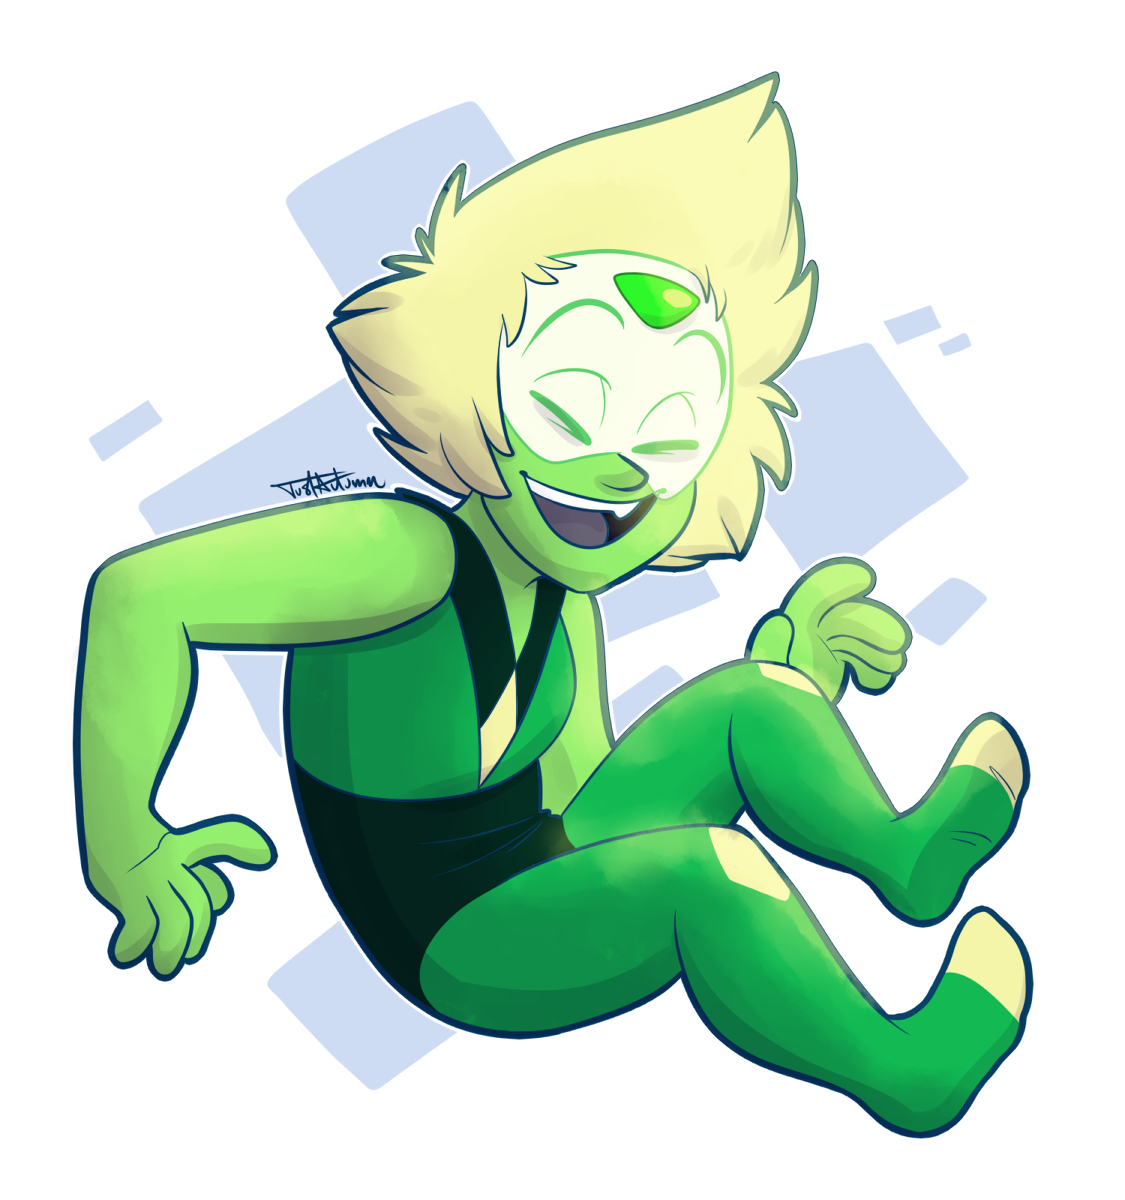 doodled up a peri during the stream last night